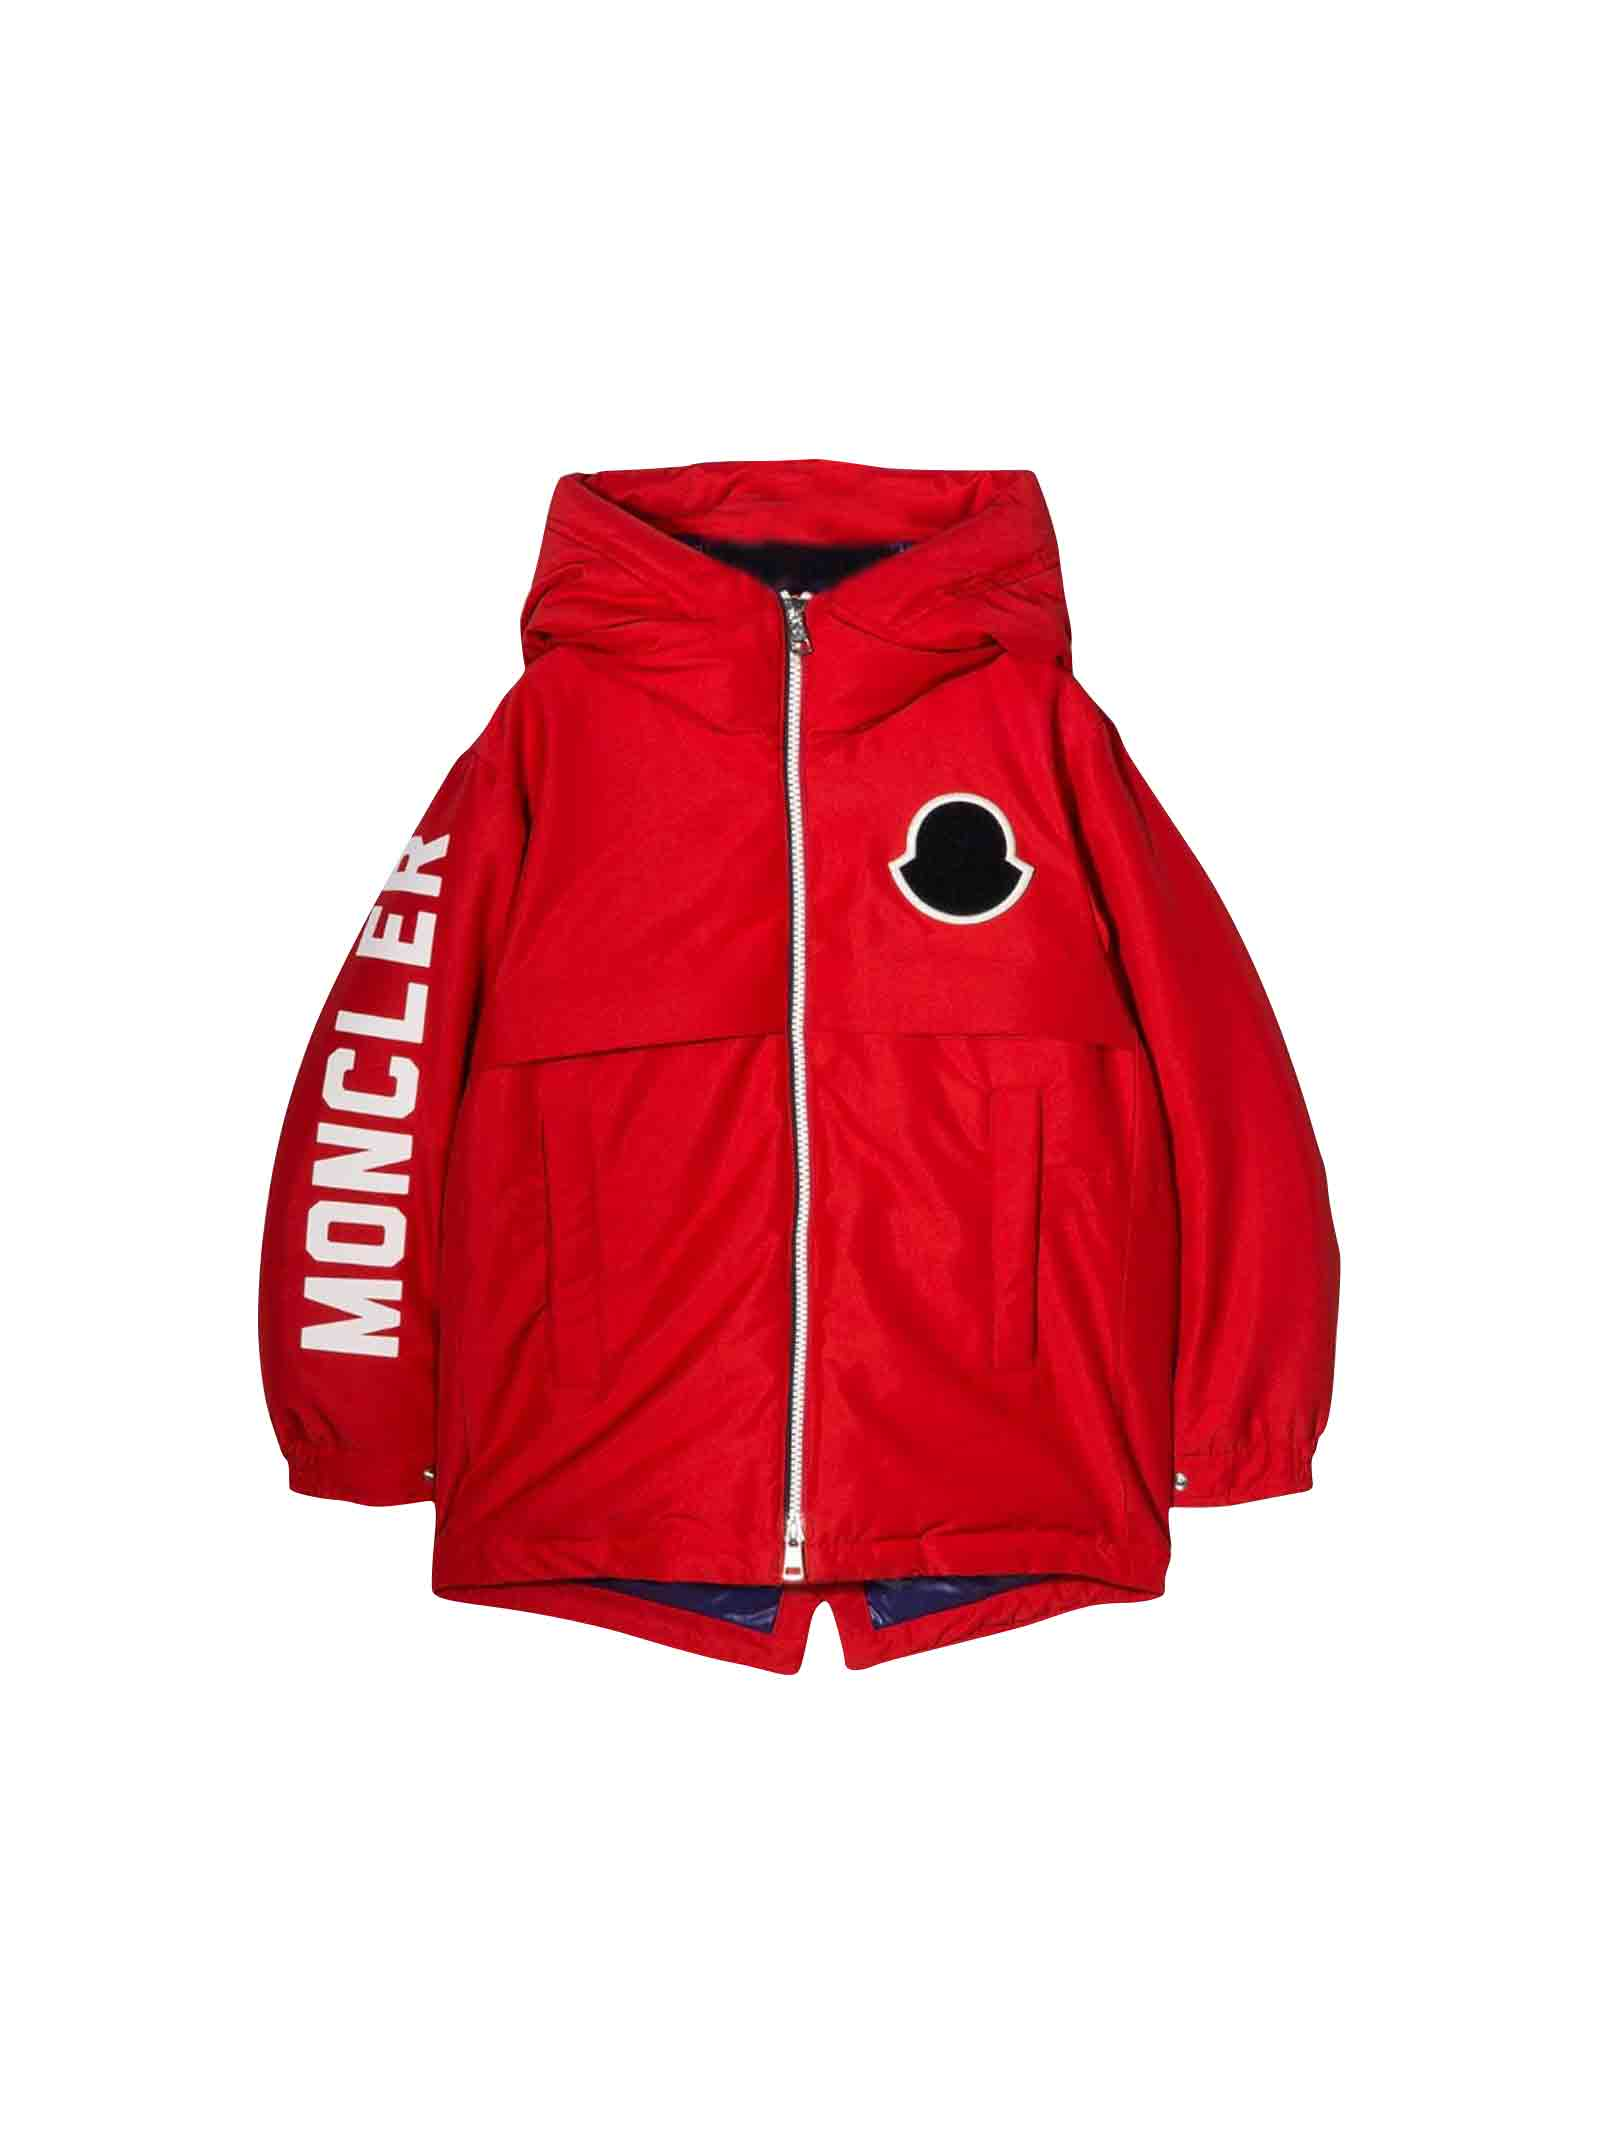 new style 44b93 42dd7 Giubbotto rosso airon bambino Moncler kids